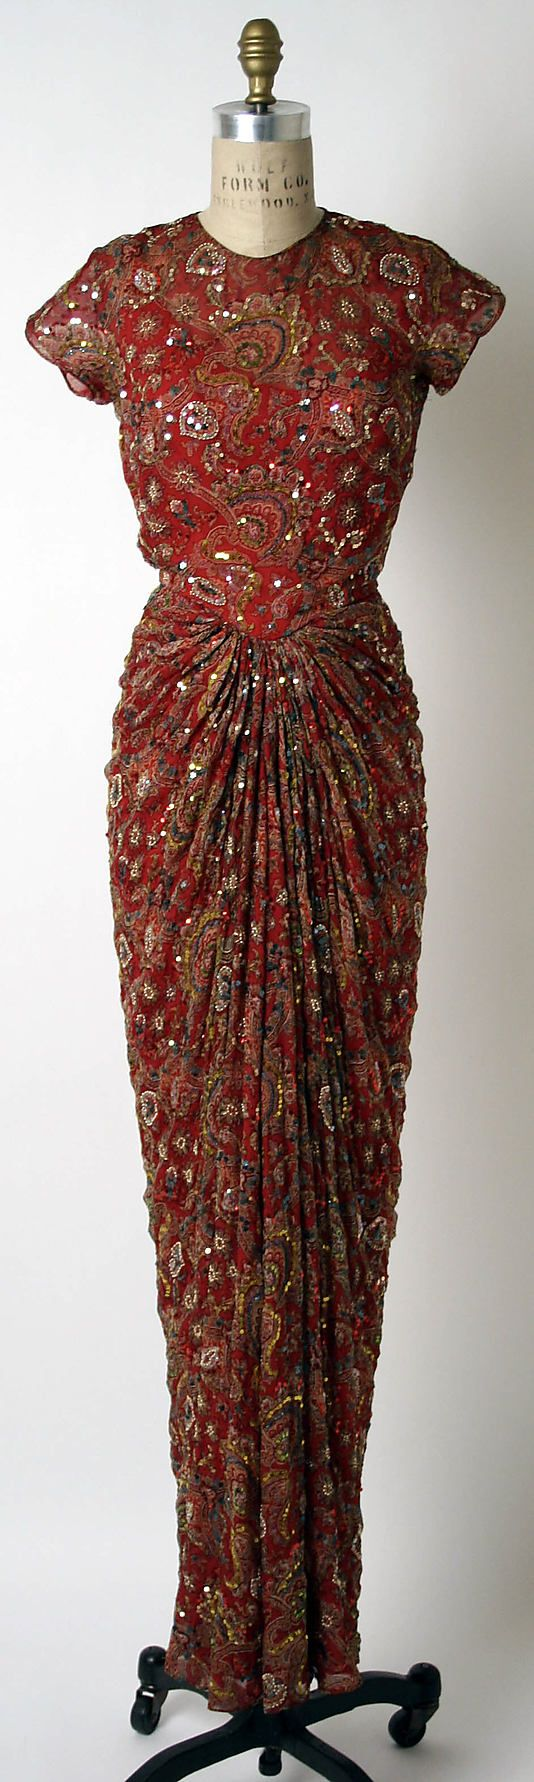 Evening dress James Galanos (American, born Philadelphia, Pennsylvania, 1924)  This dress is everything that is right with the world.